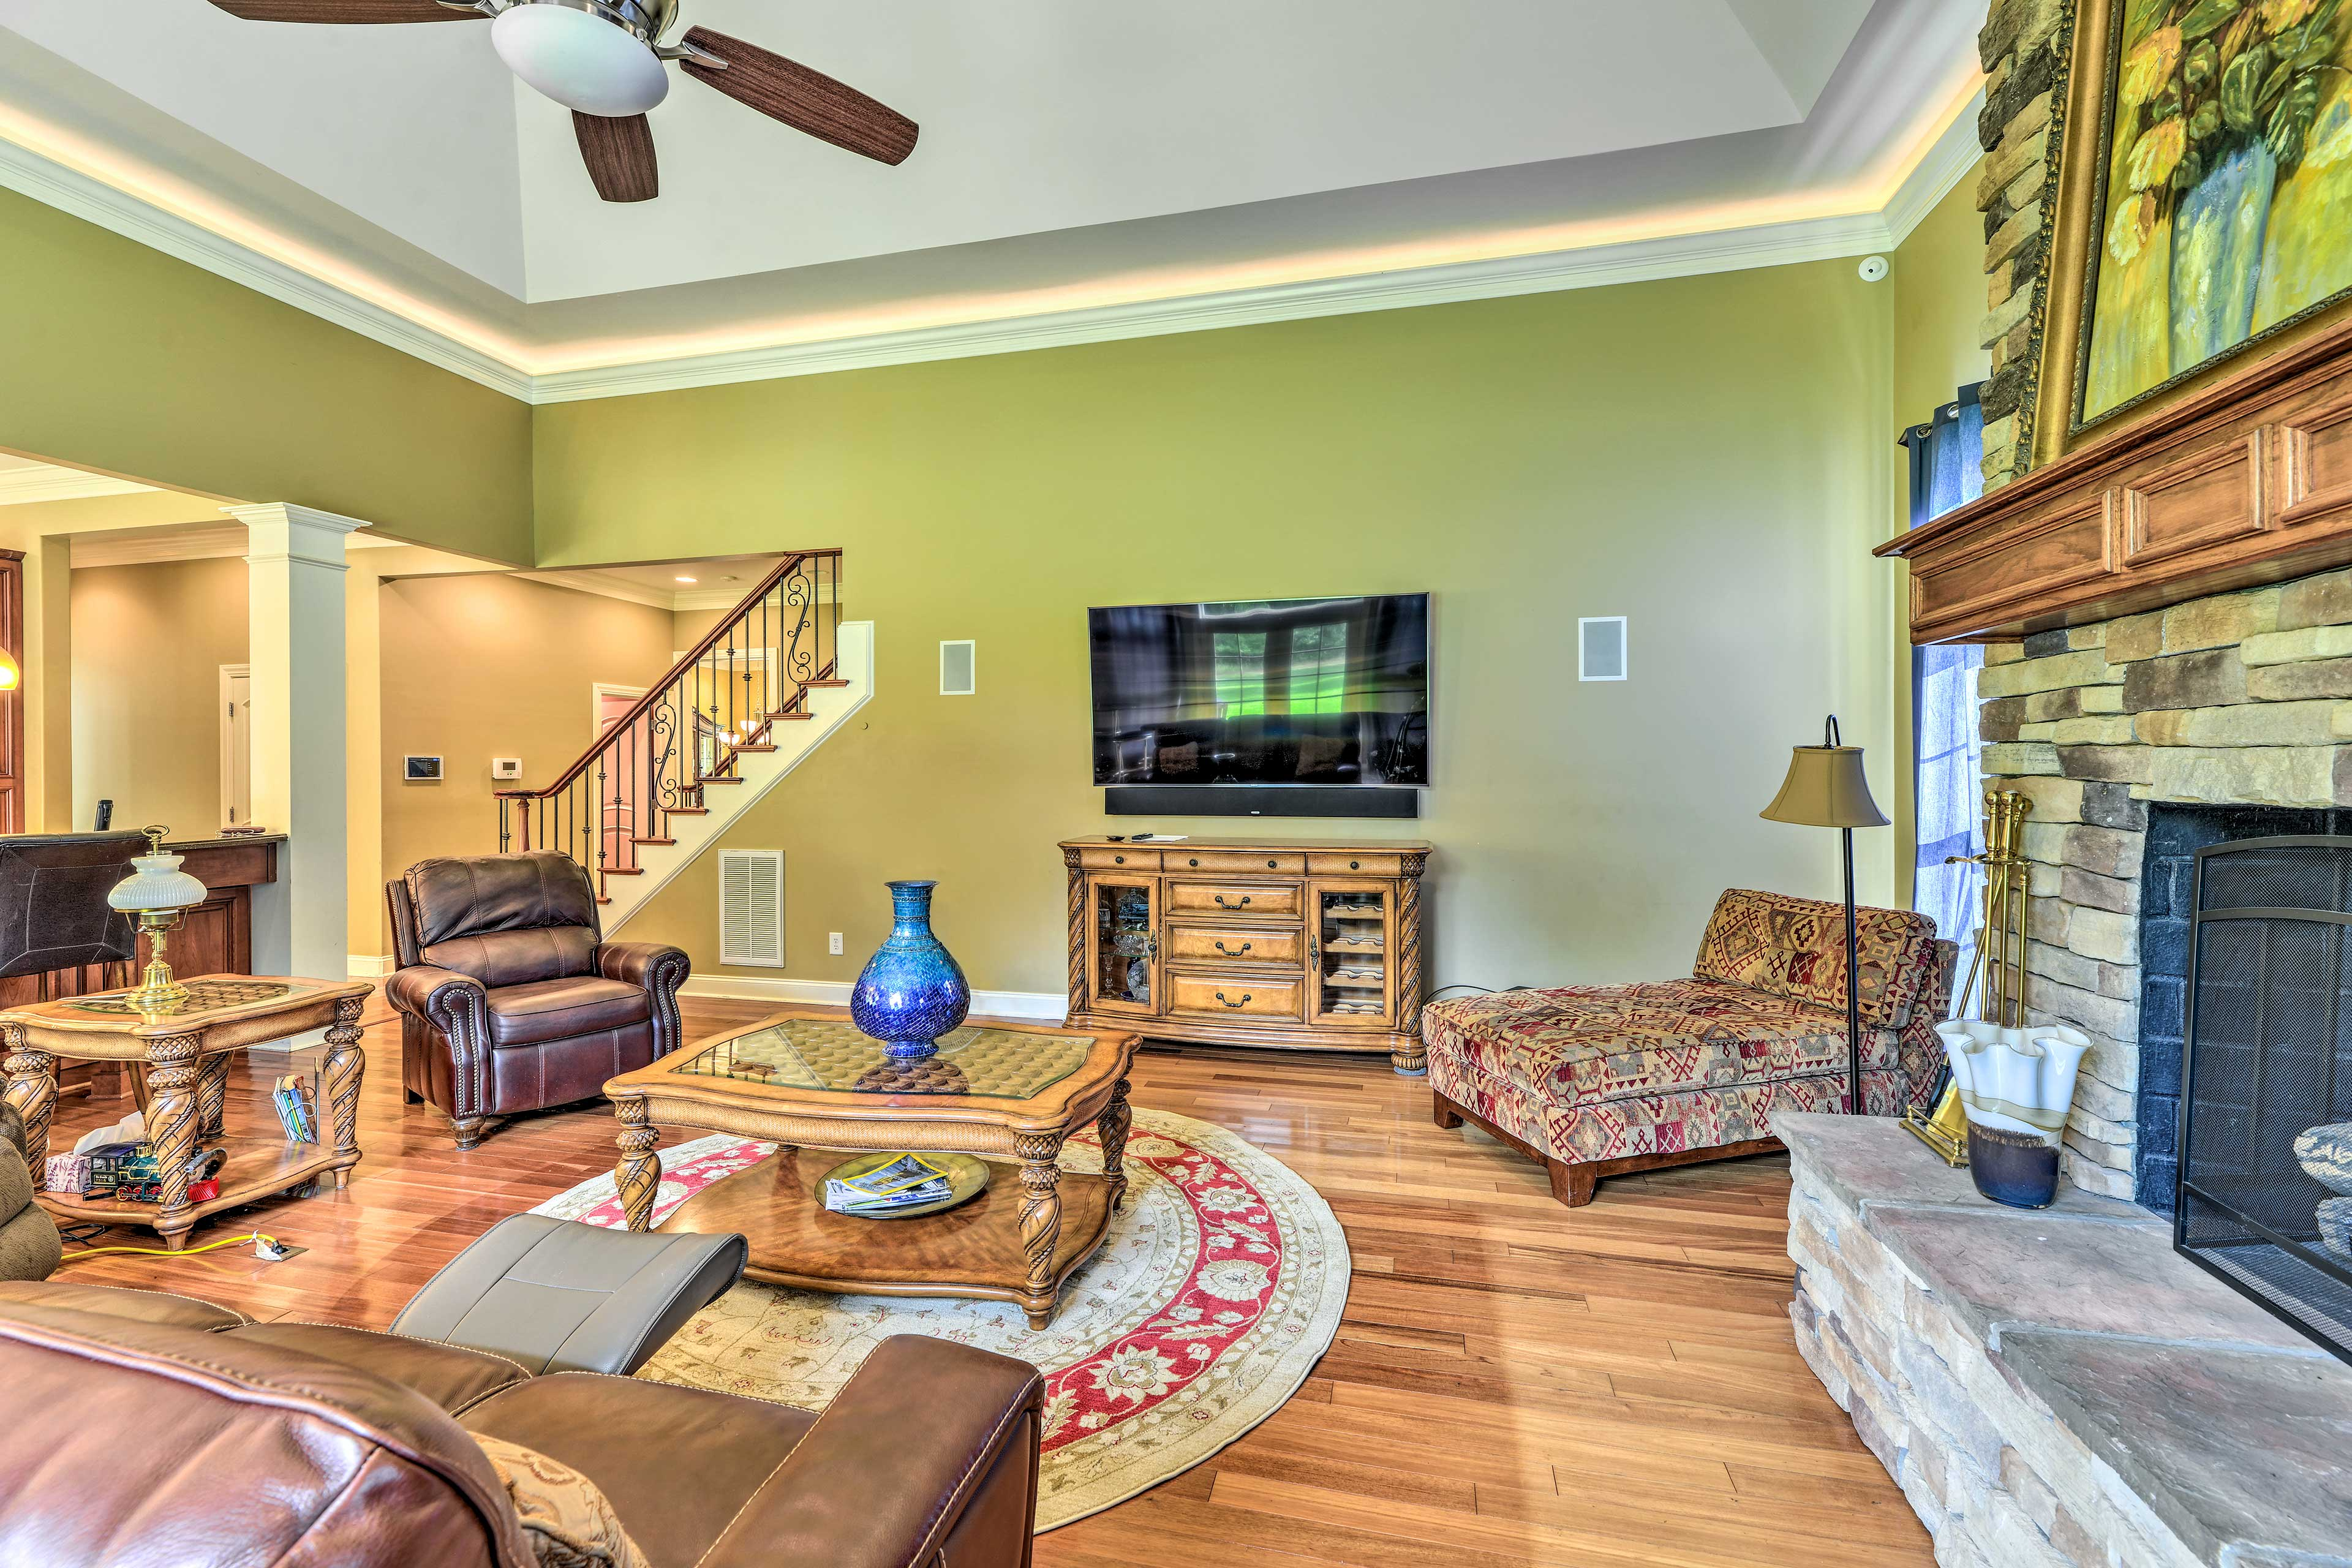 The living room includes a flat-screen TV and fireplace.